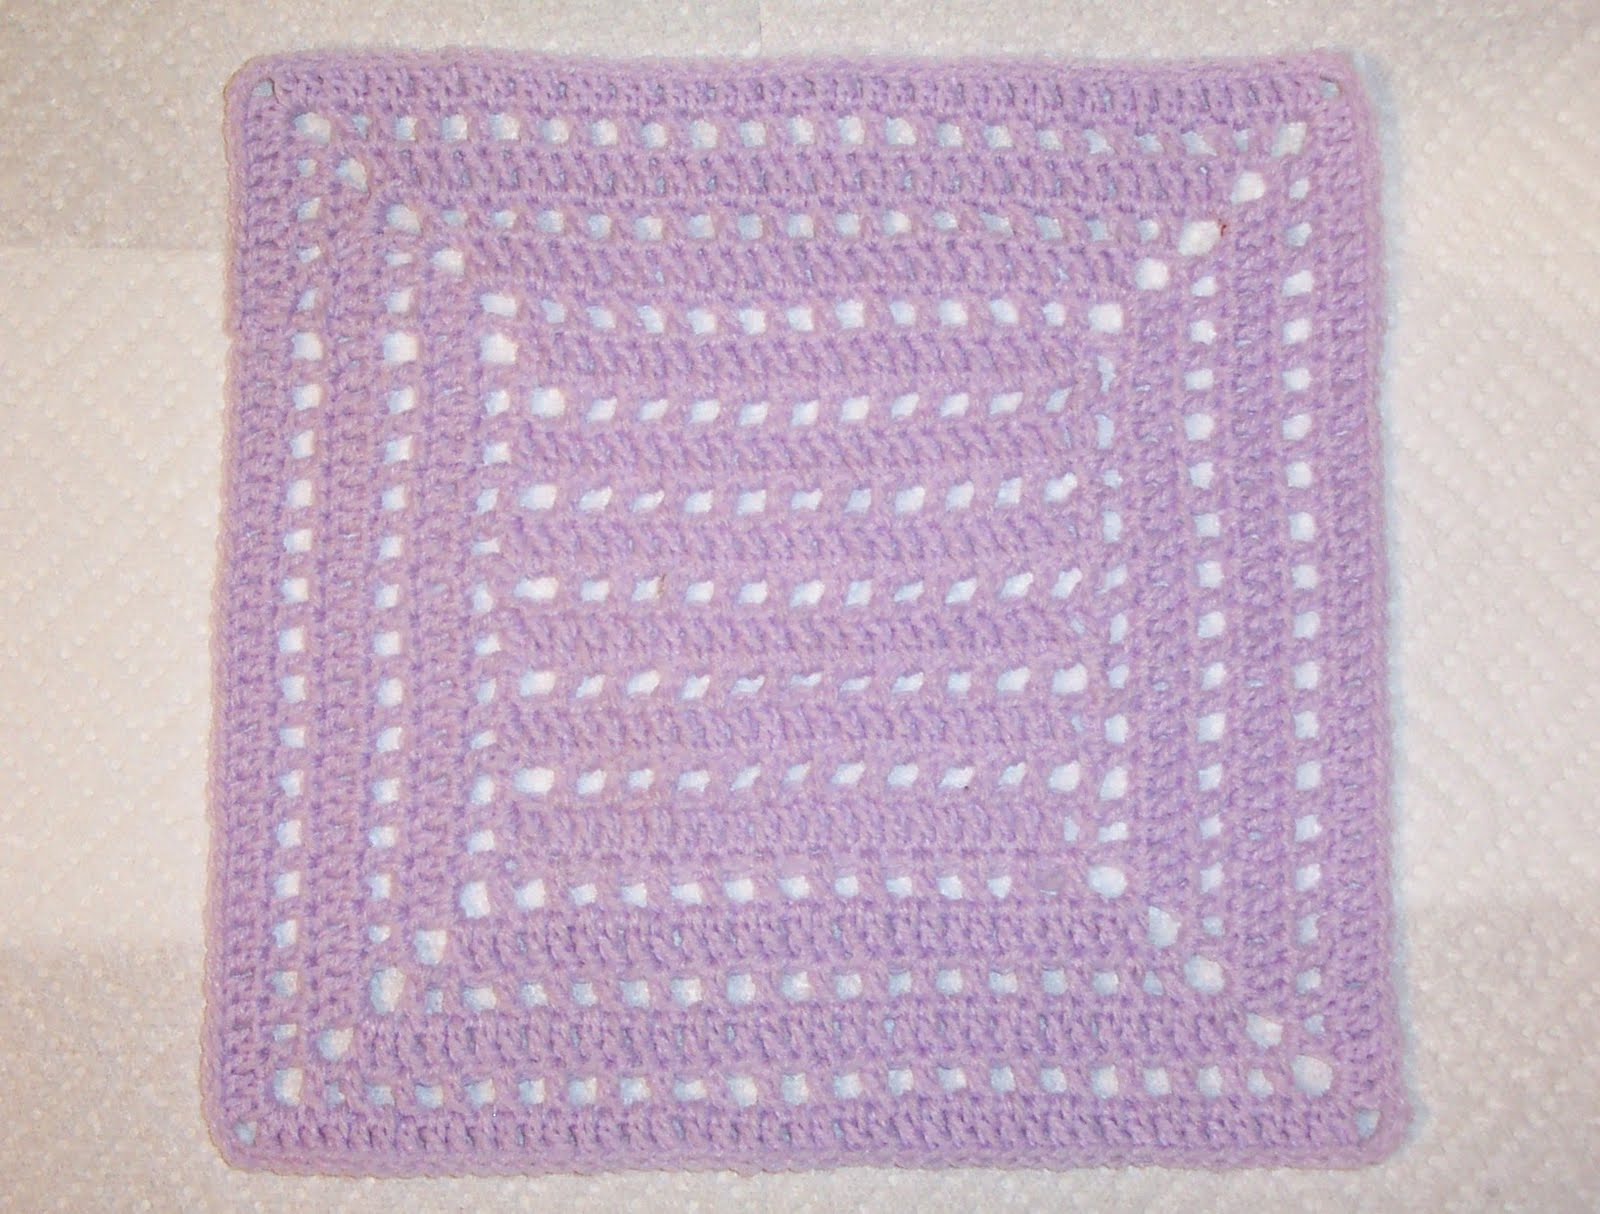 SmoothFox Crochet and Knit: SmothFoxs A Whole Lotta Holes 12x12 ...